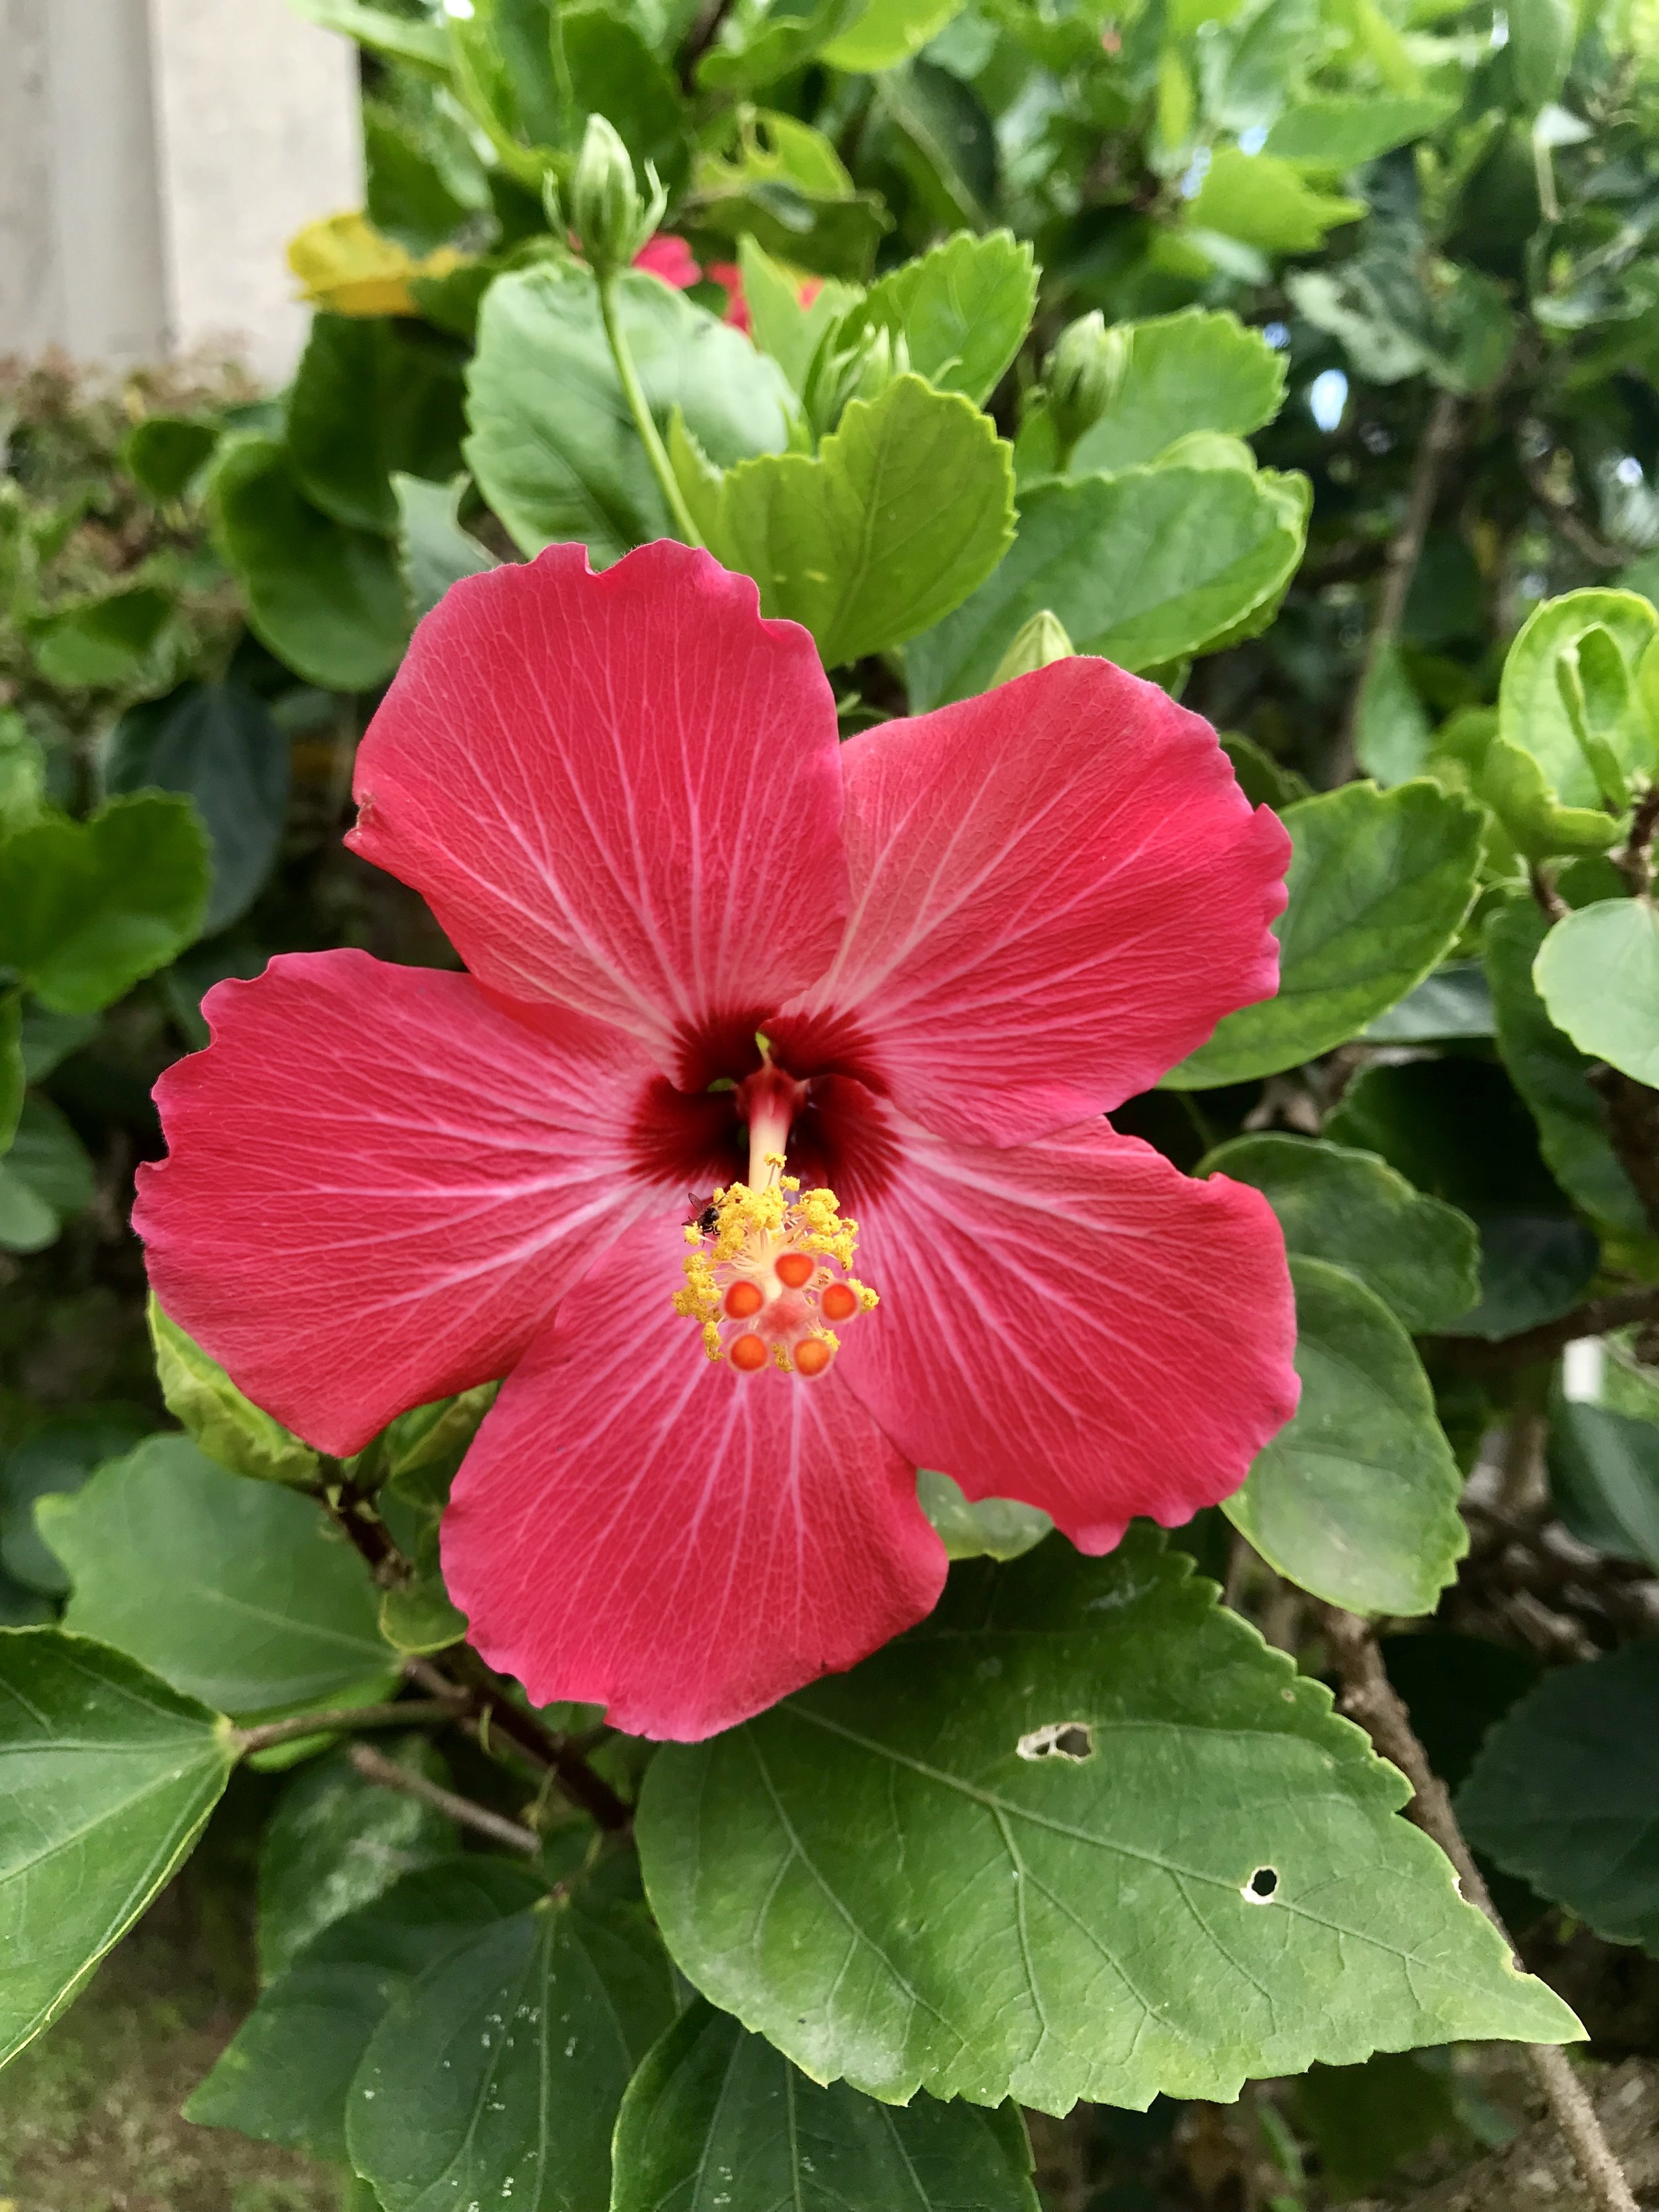 Hibiscus Flower found in our courtyard- it attracts hummingbirds